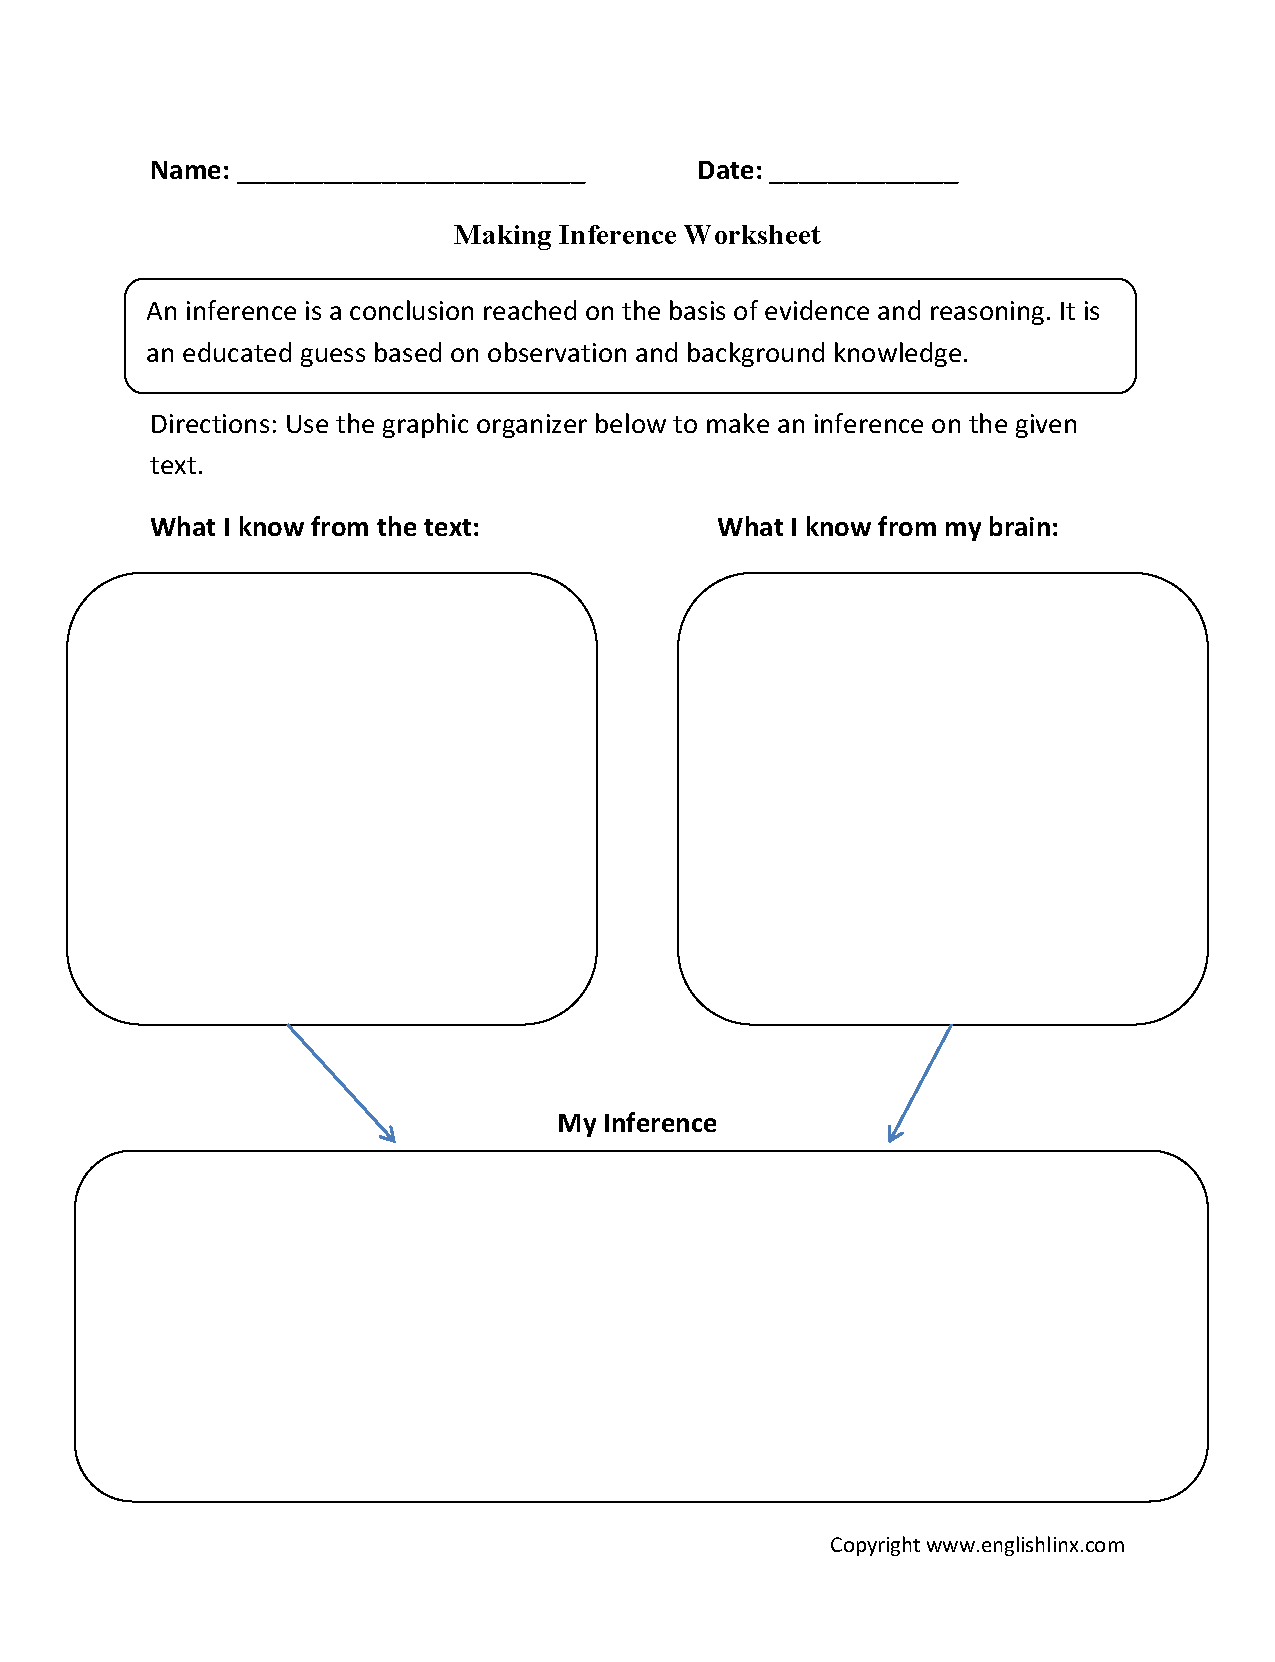 worksheet Observation And Inference Worksheet making inference worksheet pinterest this directs the student to use a graphic organizer make an on given text must wri